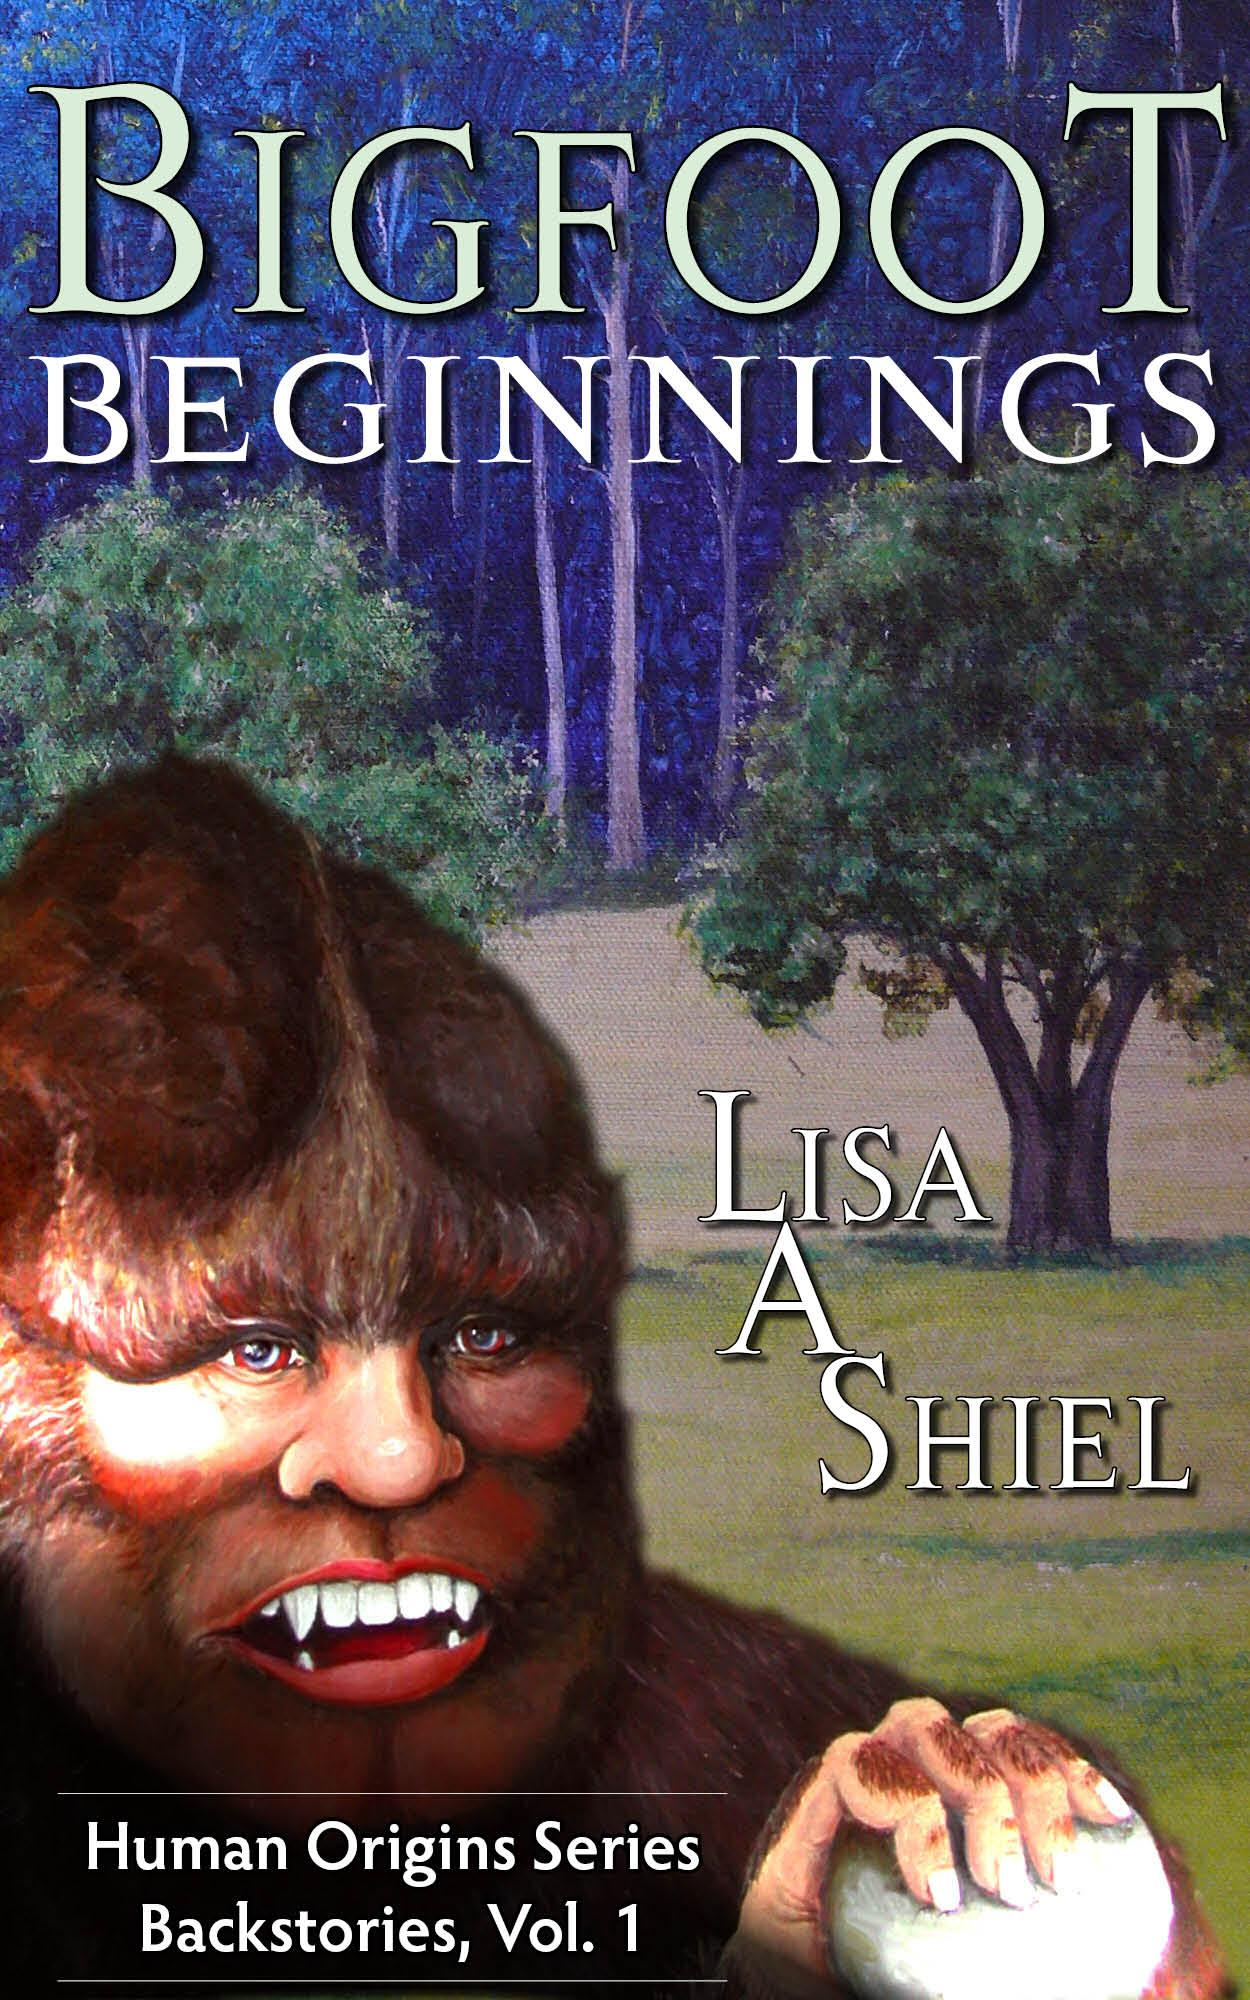 Bigfoot Beginnings: Short stories about close encounters of the Sasquatch kind (Human Origins Series, Backstories, Vol. 1) EB9781934631126